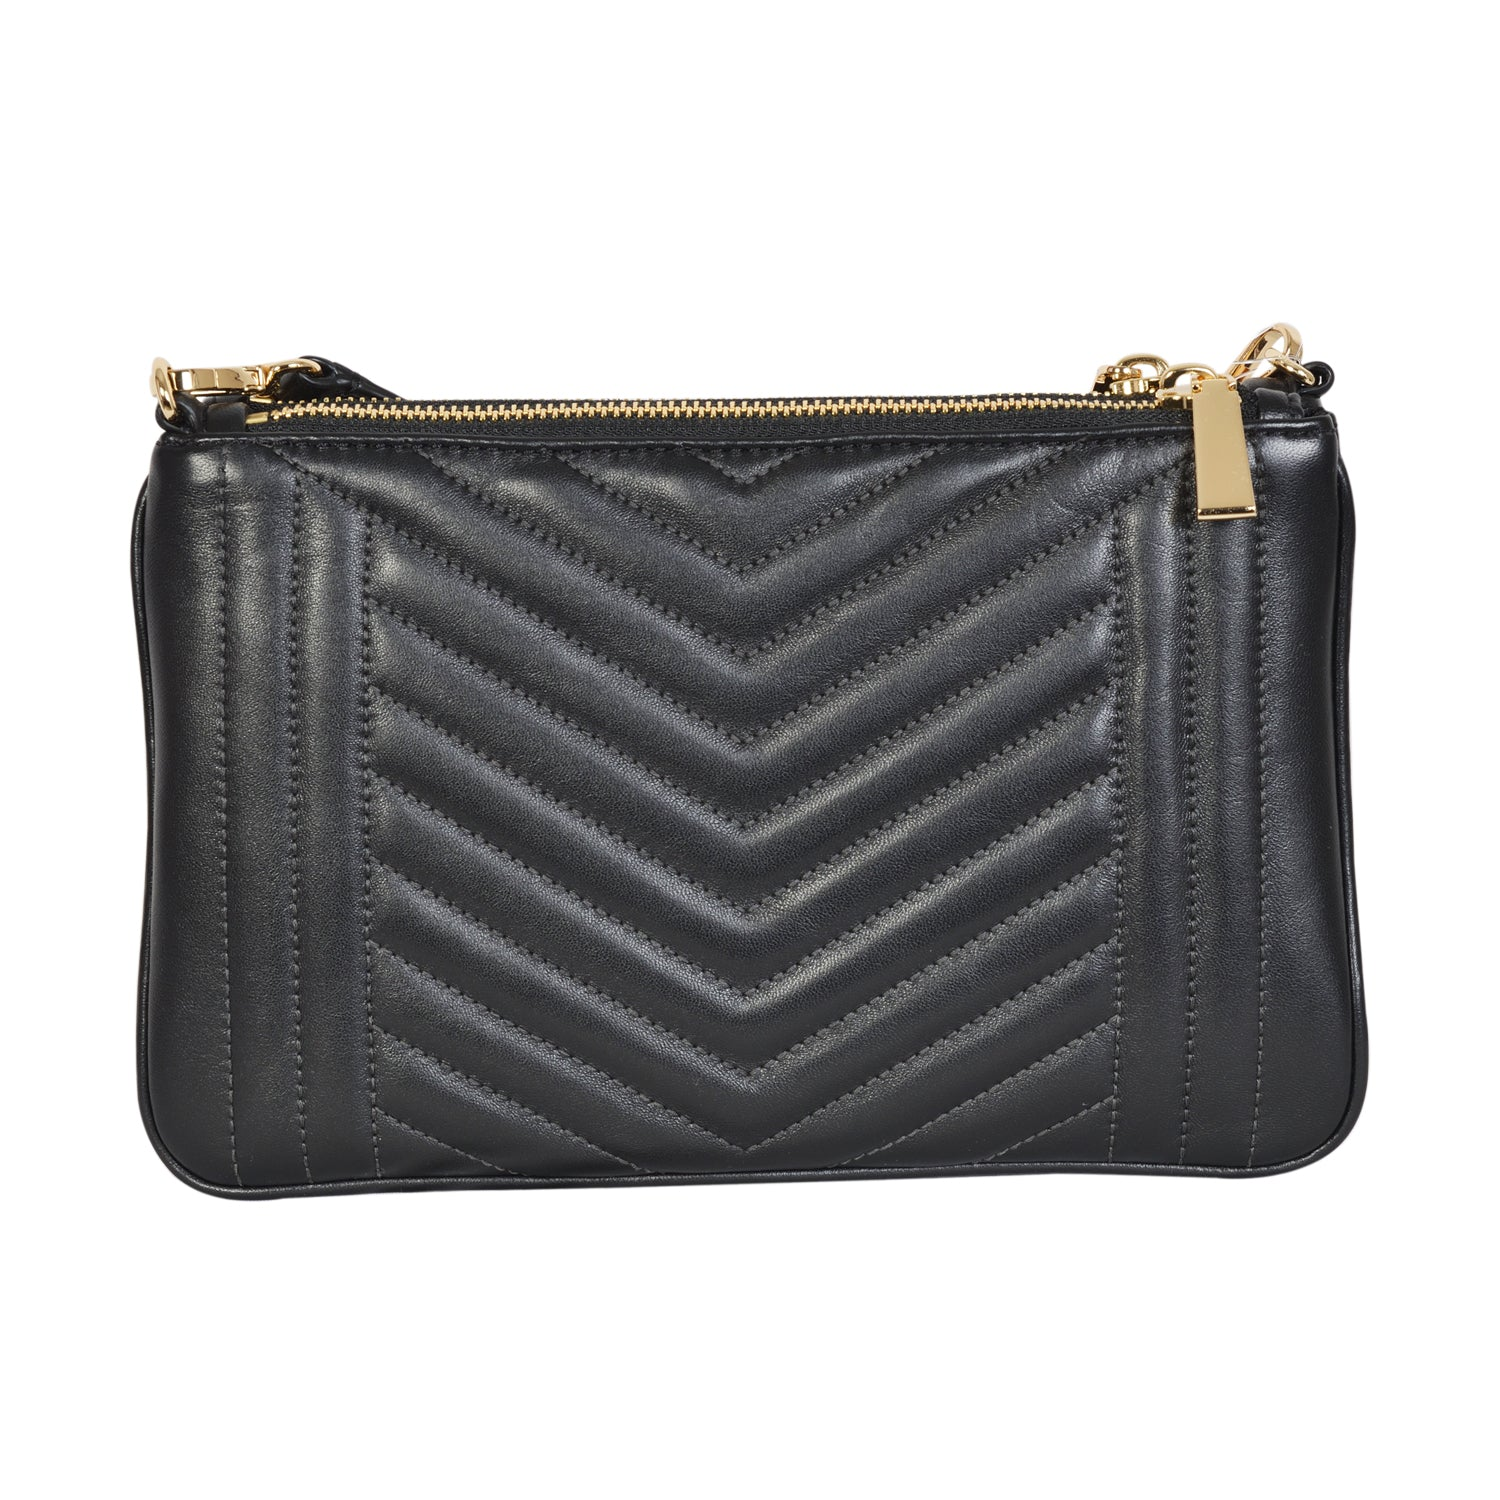 Michael Kors Jet Set black pouch in high quality leather. | Shop Luxury Pouch Online